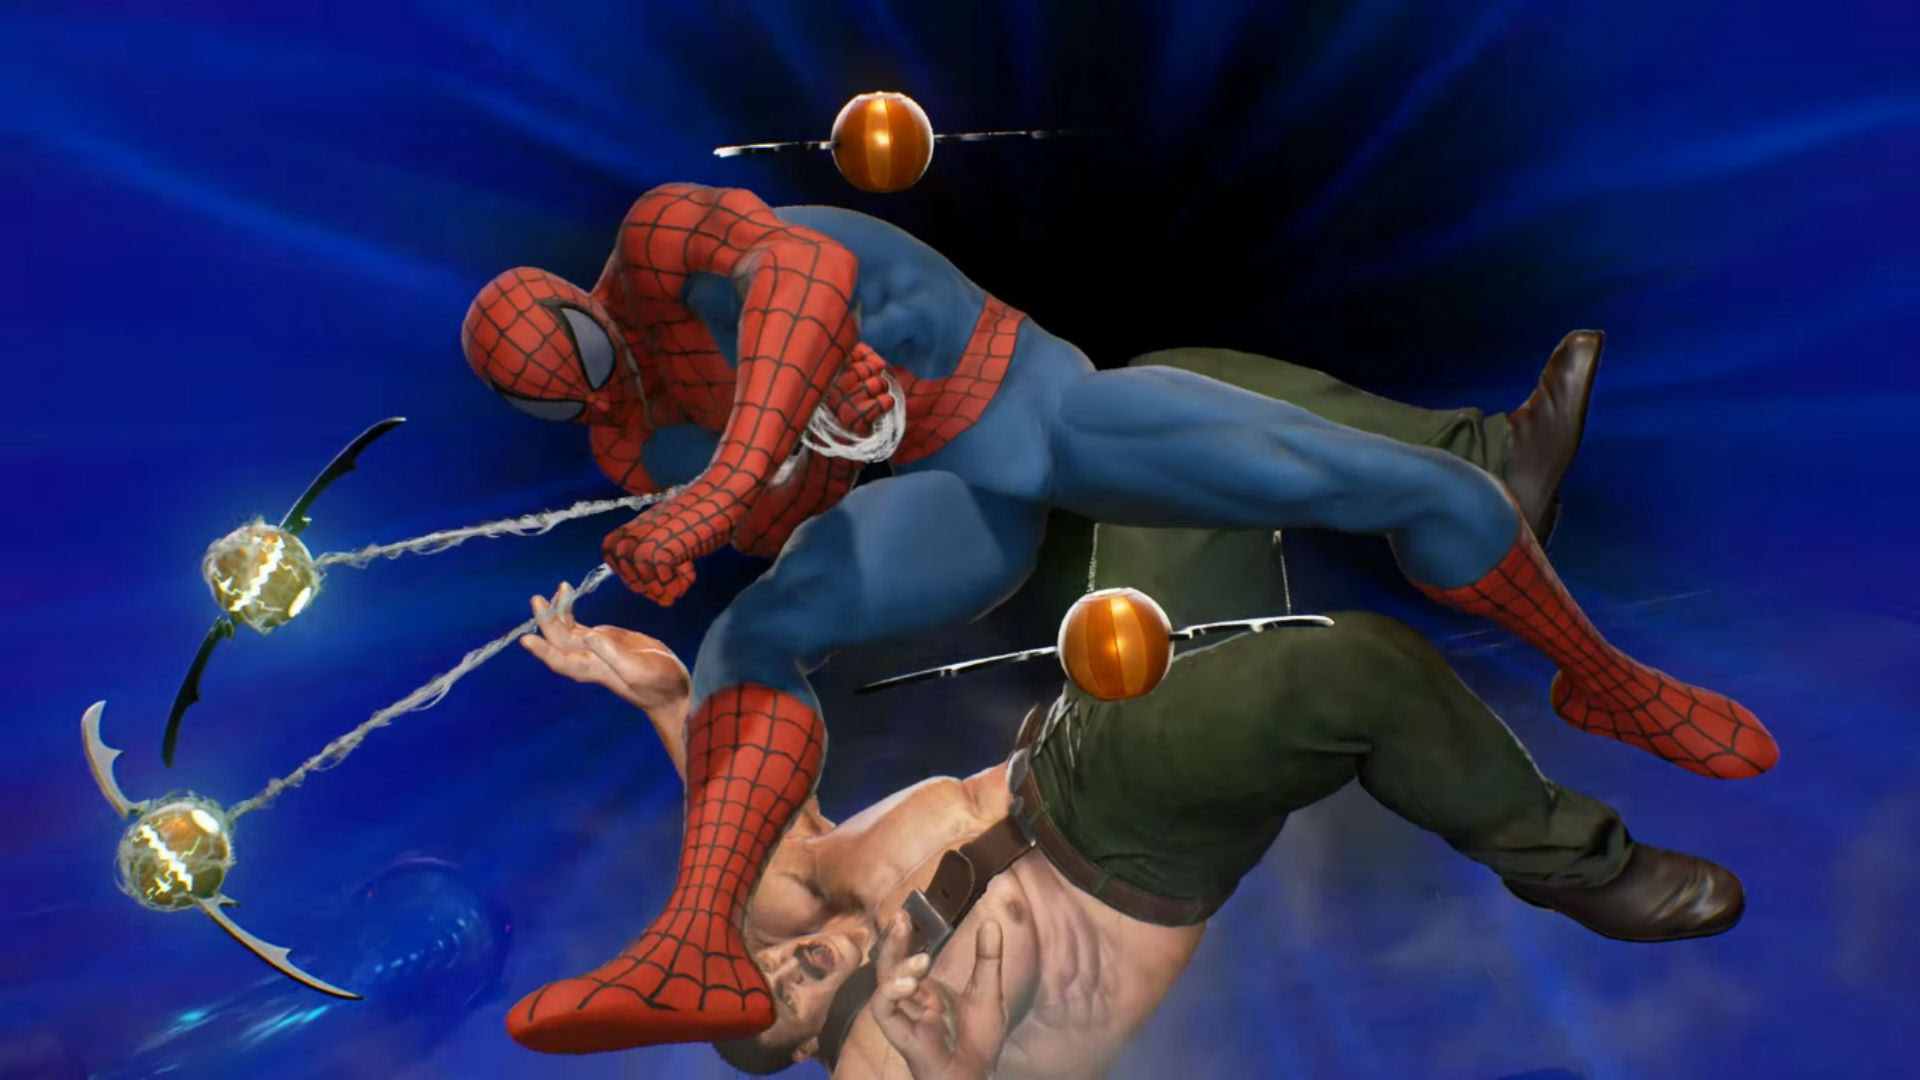 Watch Spider-Man dodge pumpkin bombs while Frank West takes a photo in Marvel vs. Capcom: Infinite screenshot